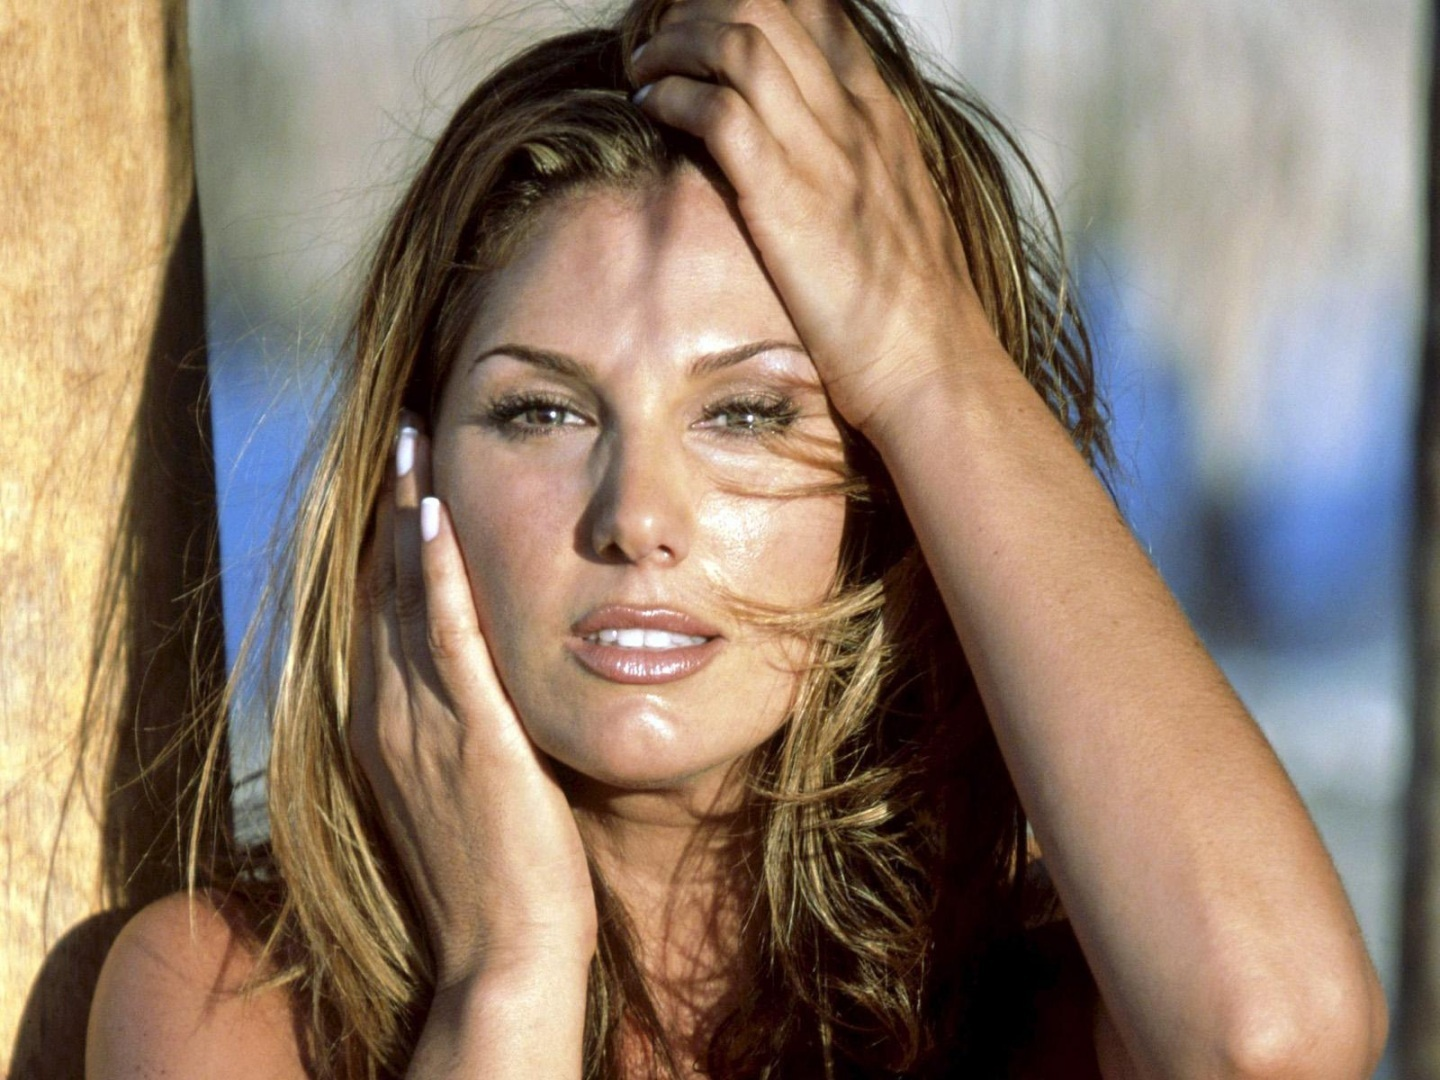 1440x1080 - Daisy Fuentes Wallpapers 27